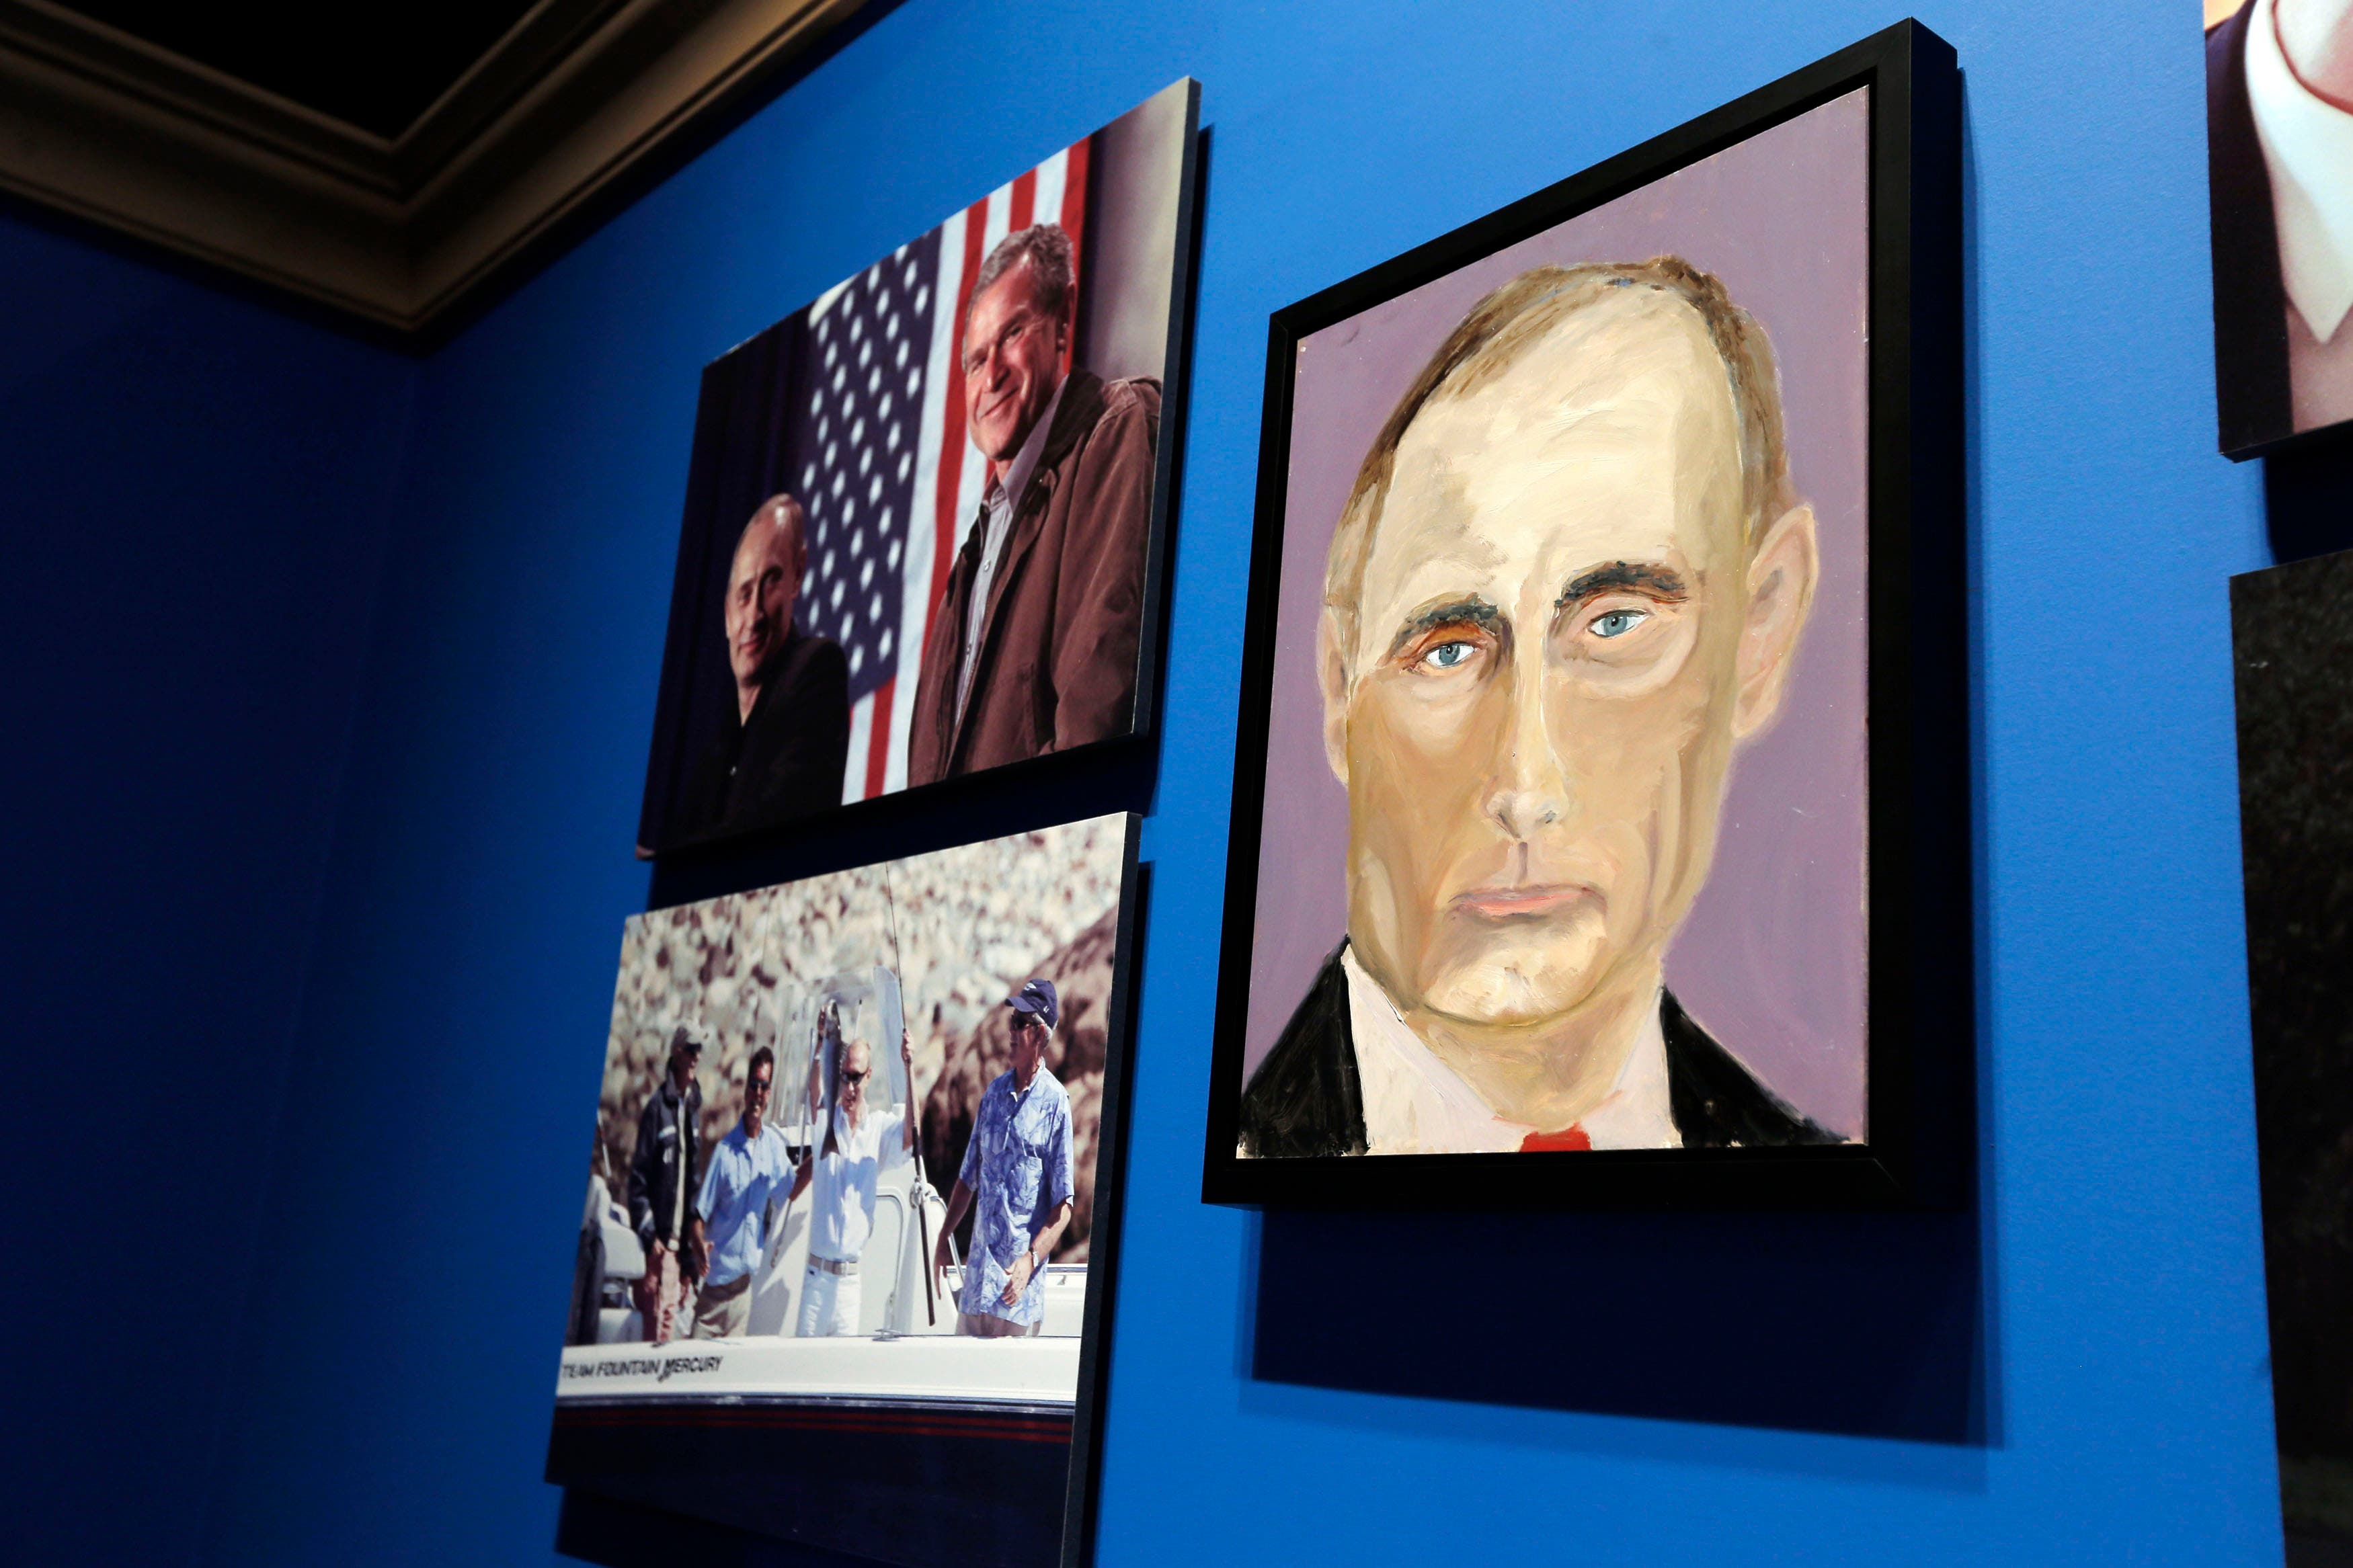 A portrait of Russian President Vladimir Putin, painted by former U.S. President George W. Bush, is displayed at an exhibit at the Bush Presidential Library and Museum in Dallas, Texas April 4, 2014. (Reuters)